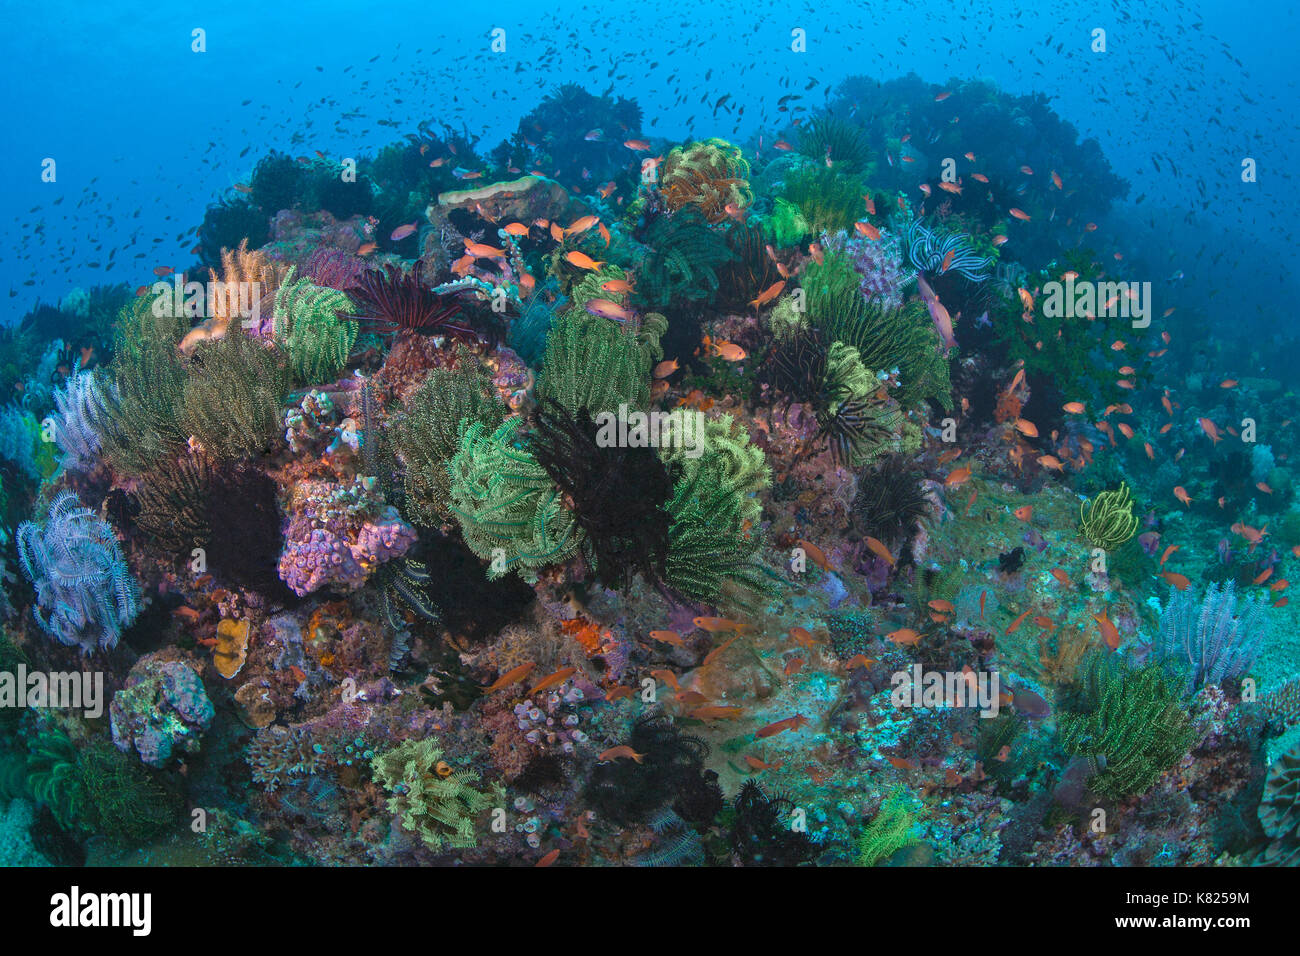 Coral reef populated with colorful crinods. Puerto Galera , Philippines. - Stock Image